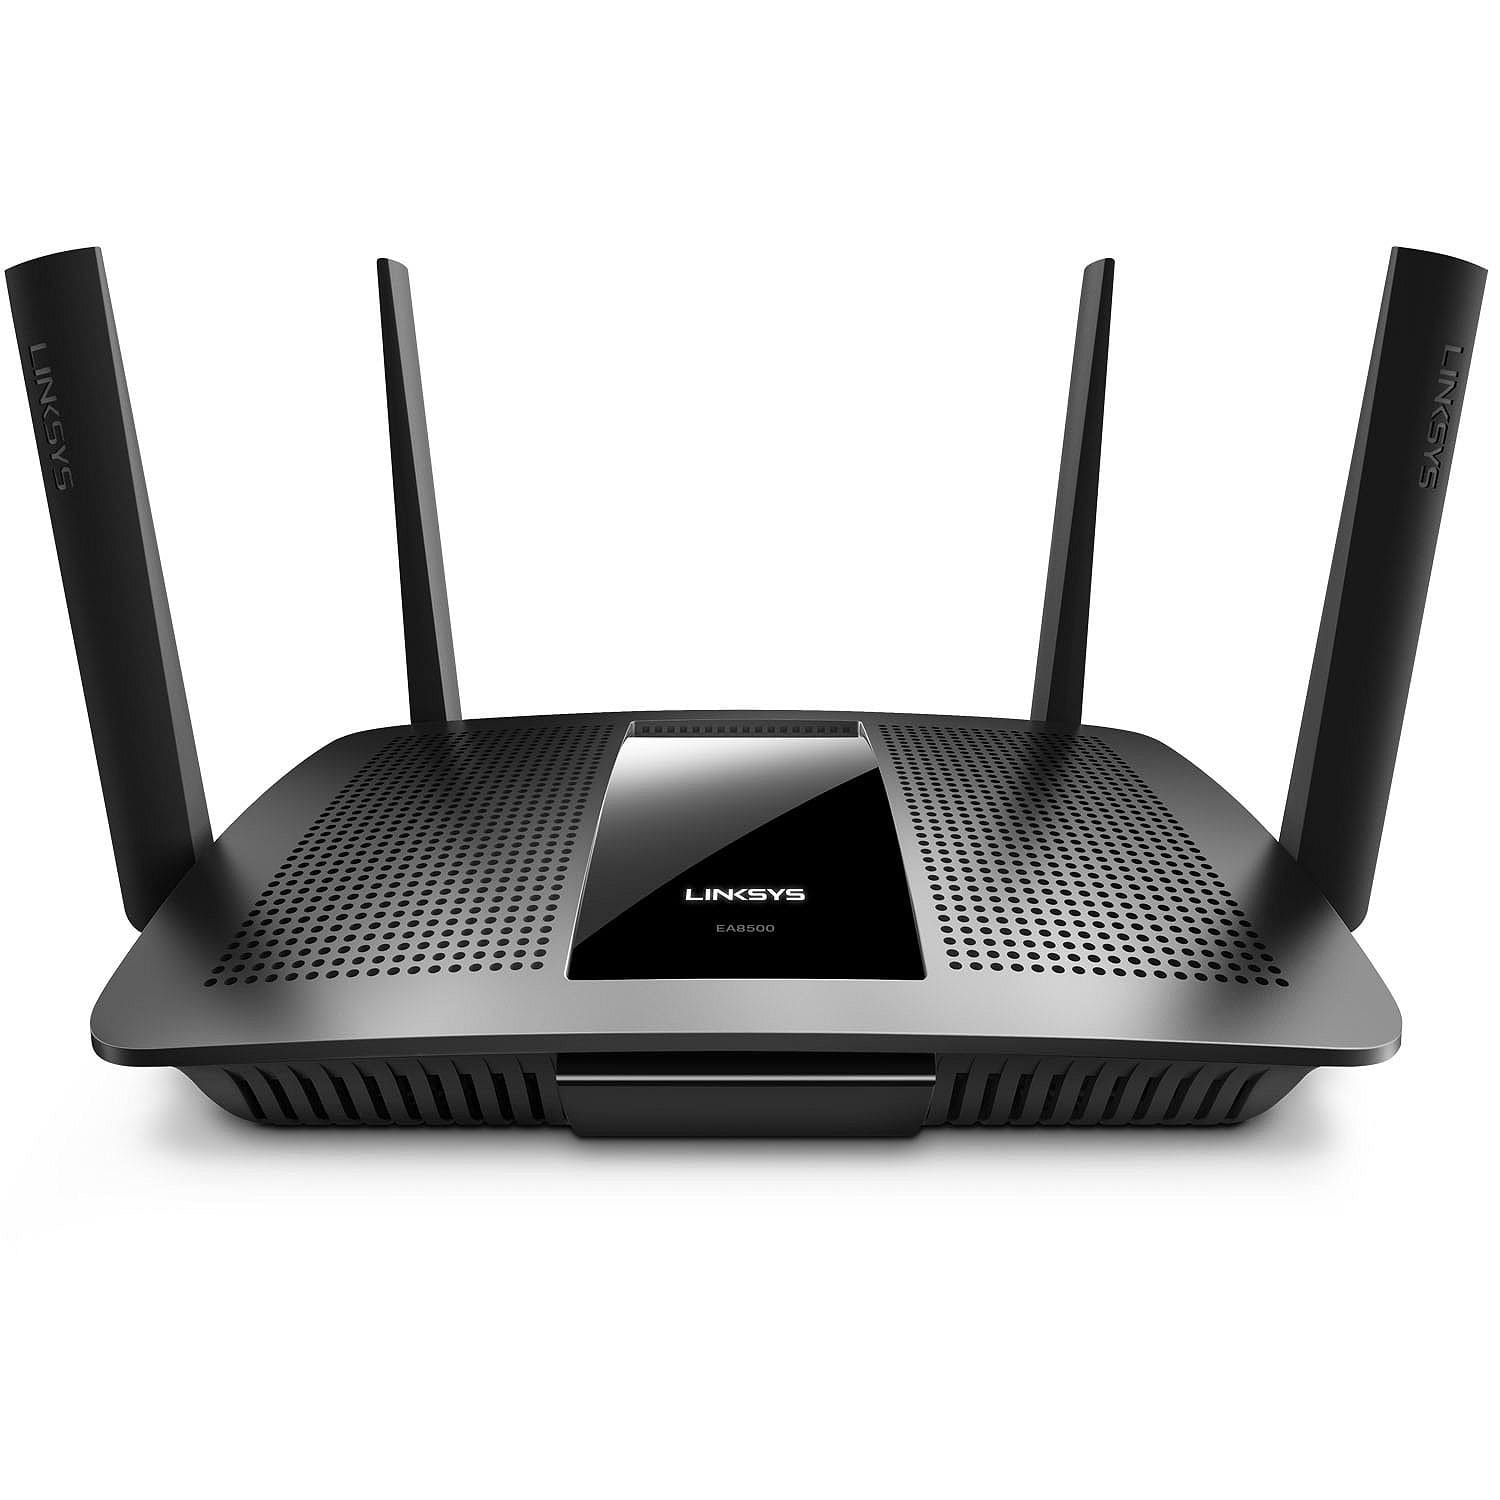 Linksys AC2600 Router for $89.98 + Free Shipping Online and at B&M at Sam's Club on 11/11